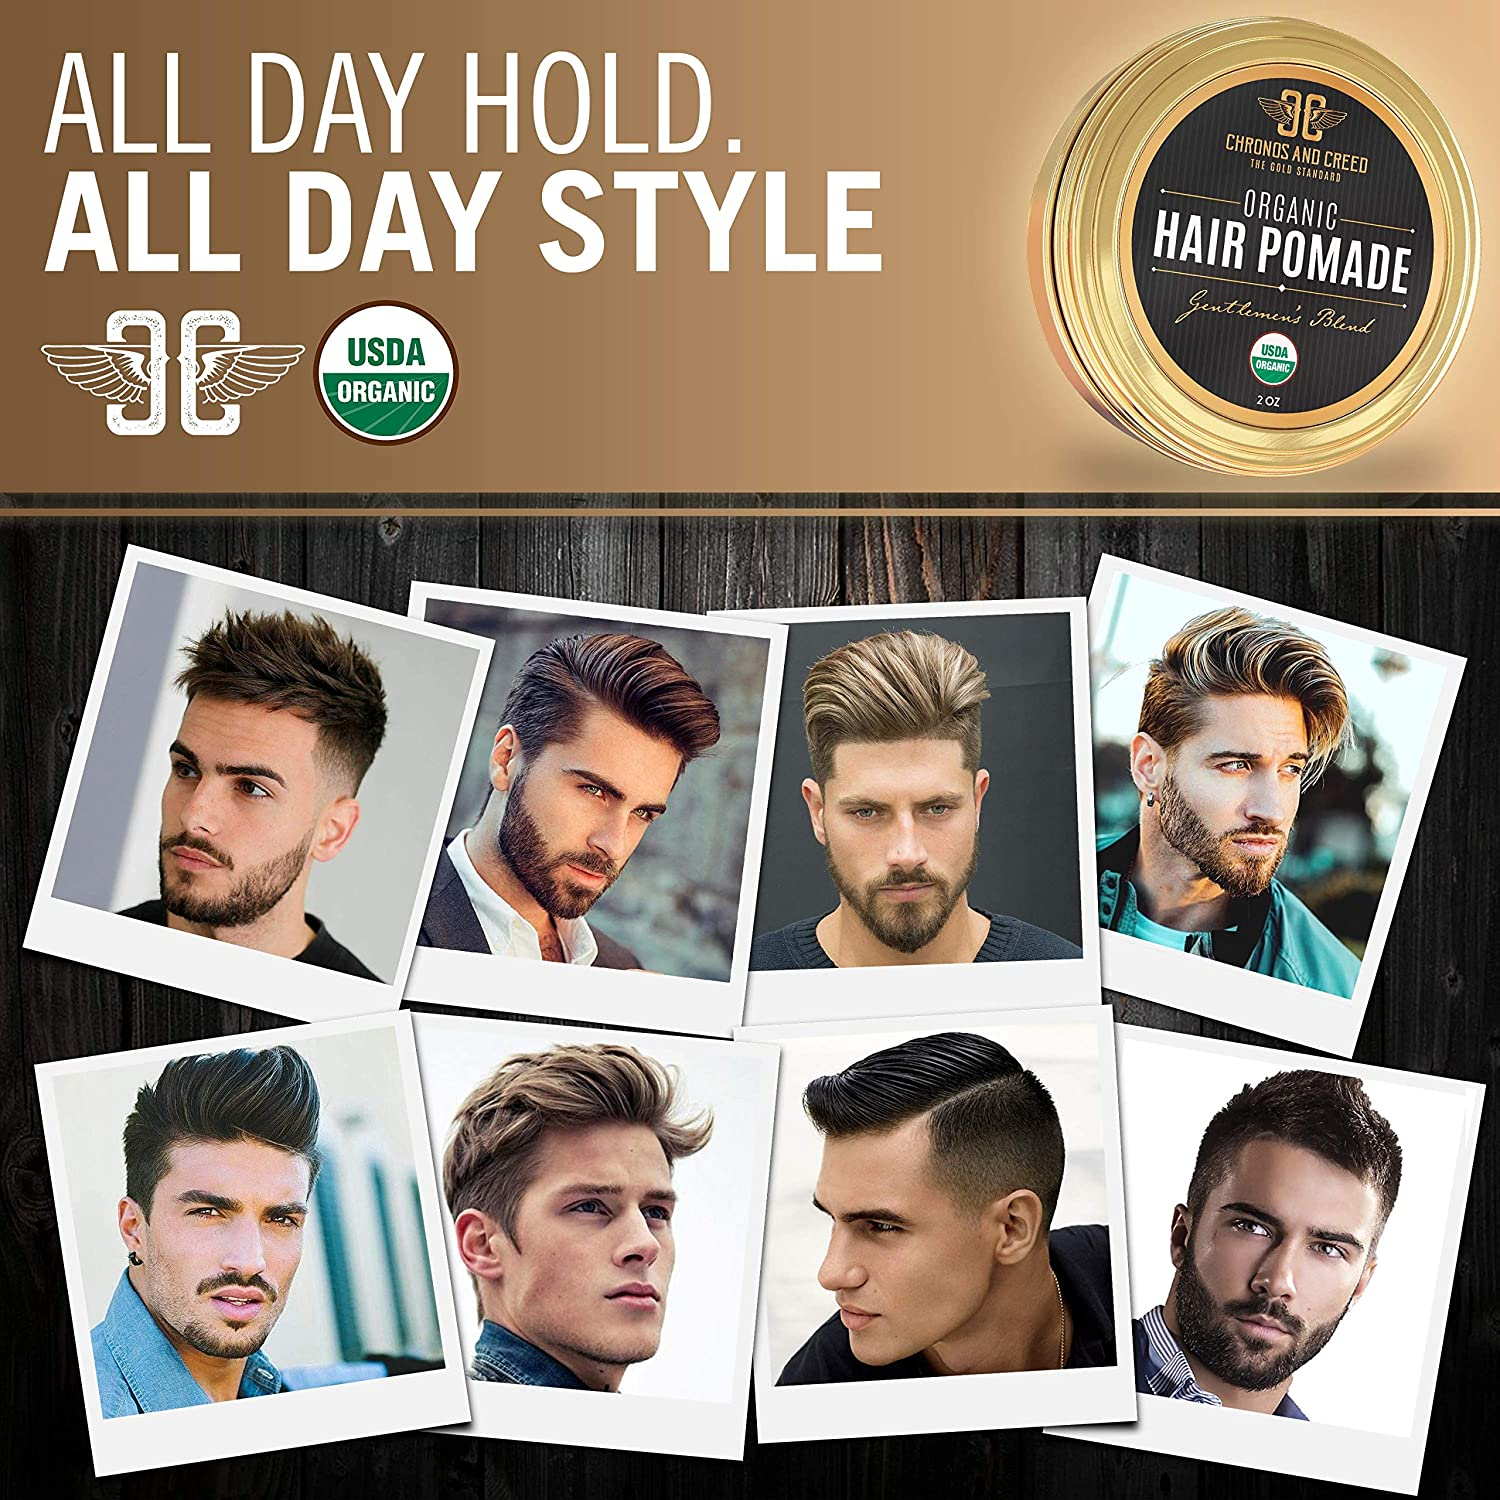 Amazon.com   Pomade - USDA Organic Hair Wax Pomade For Men - All Day Hold -  Premium Hair Product For Men With Medium Shine - Natural Softer Hair -  Natural ... dacf7262cd